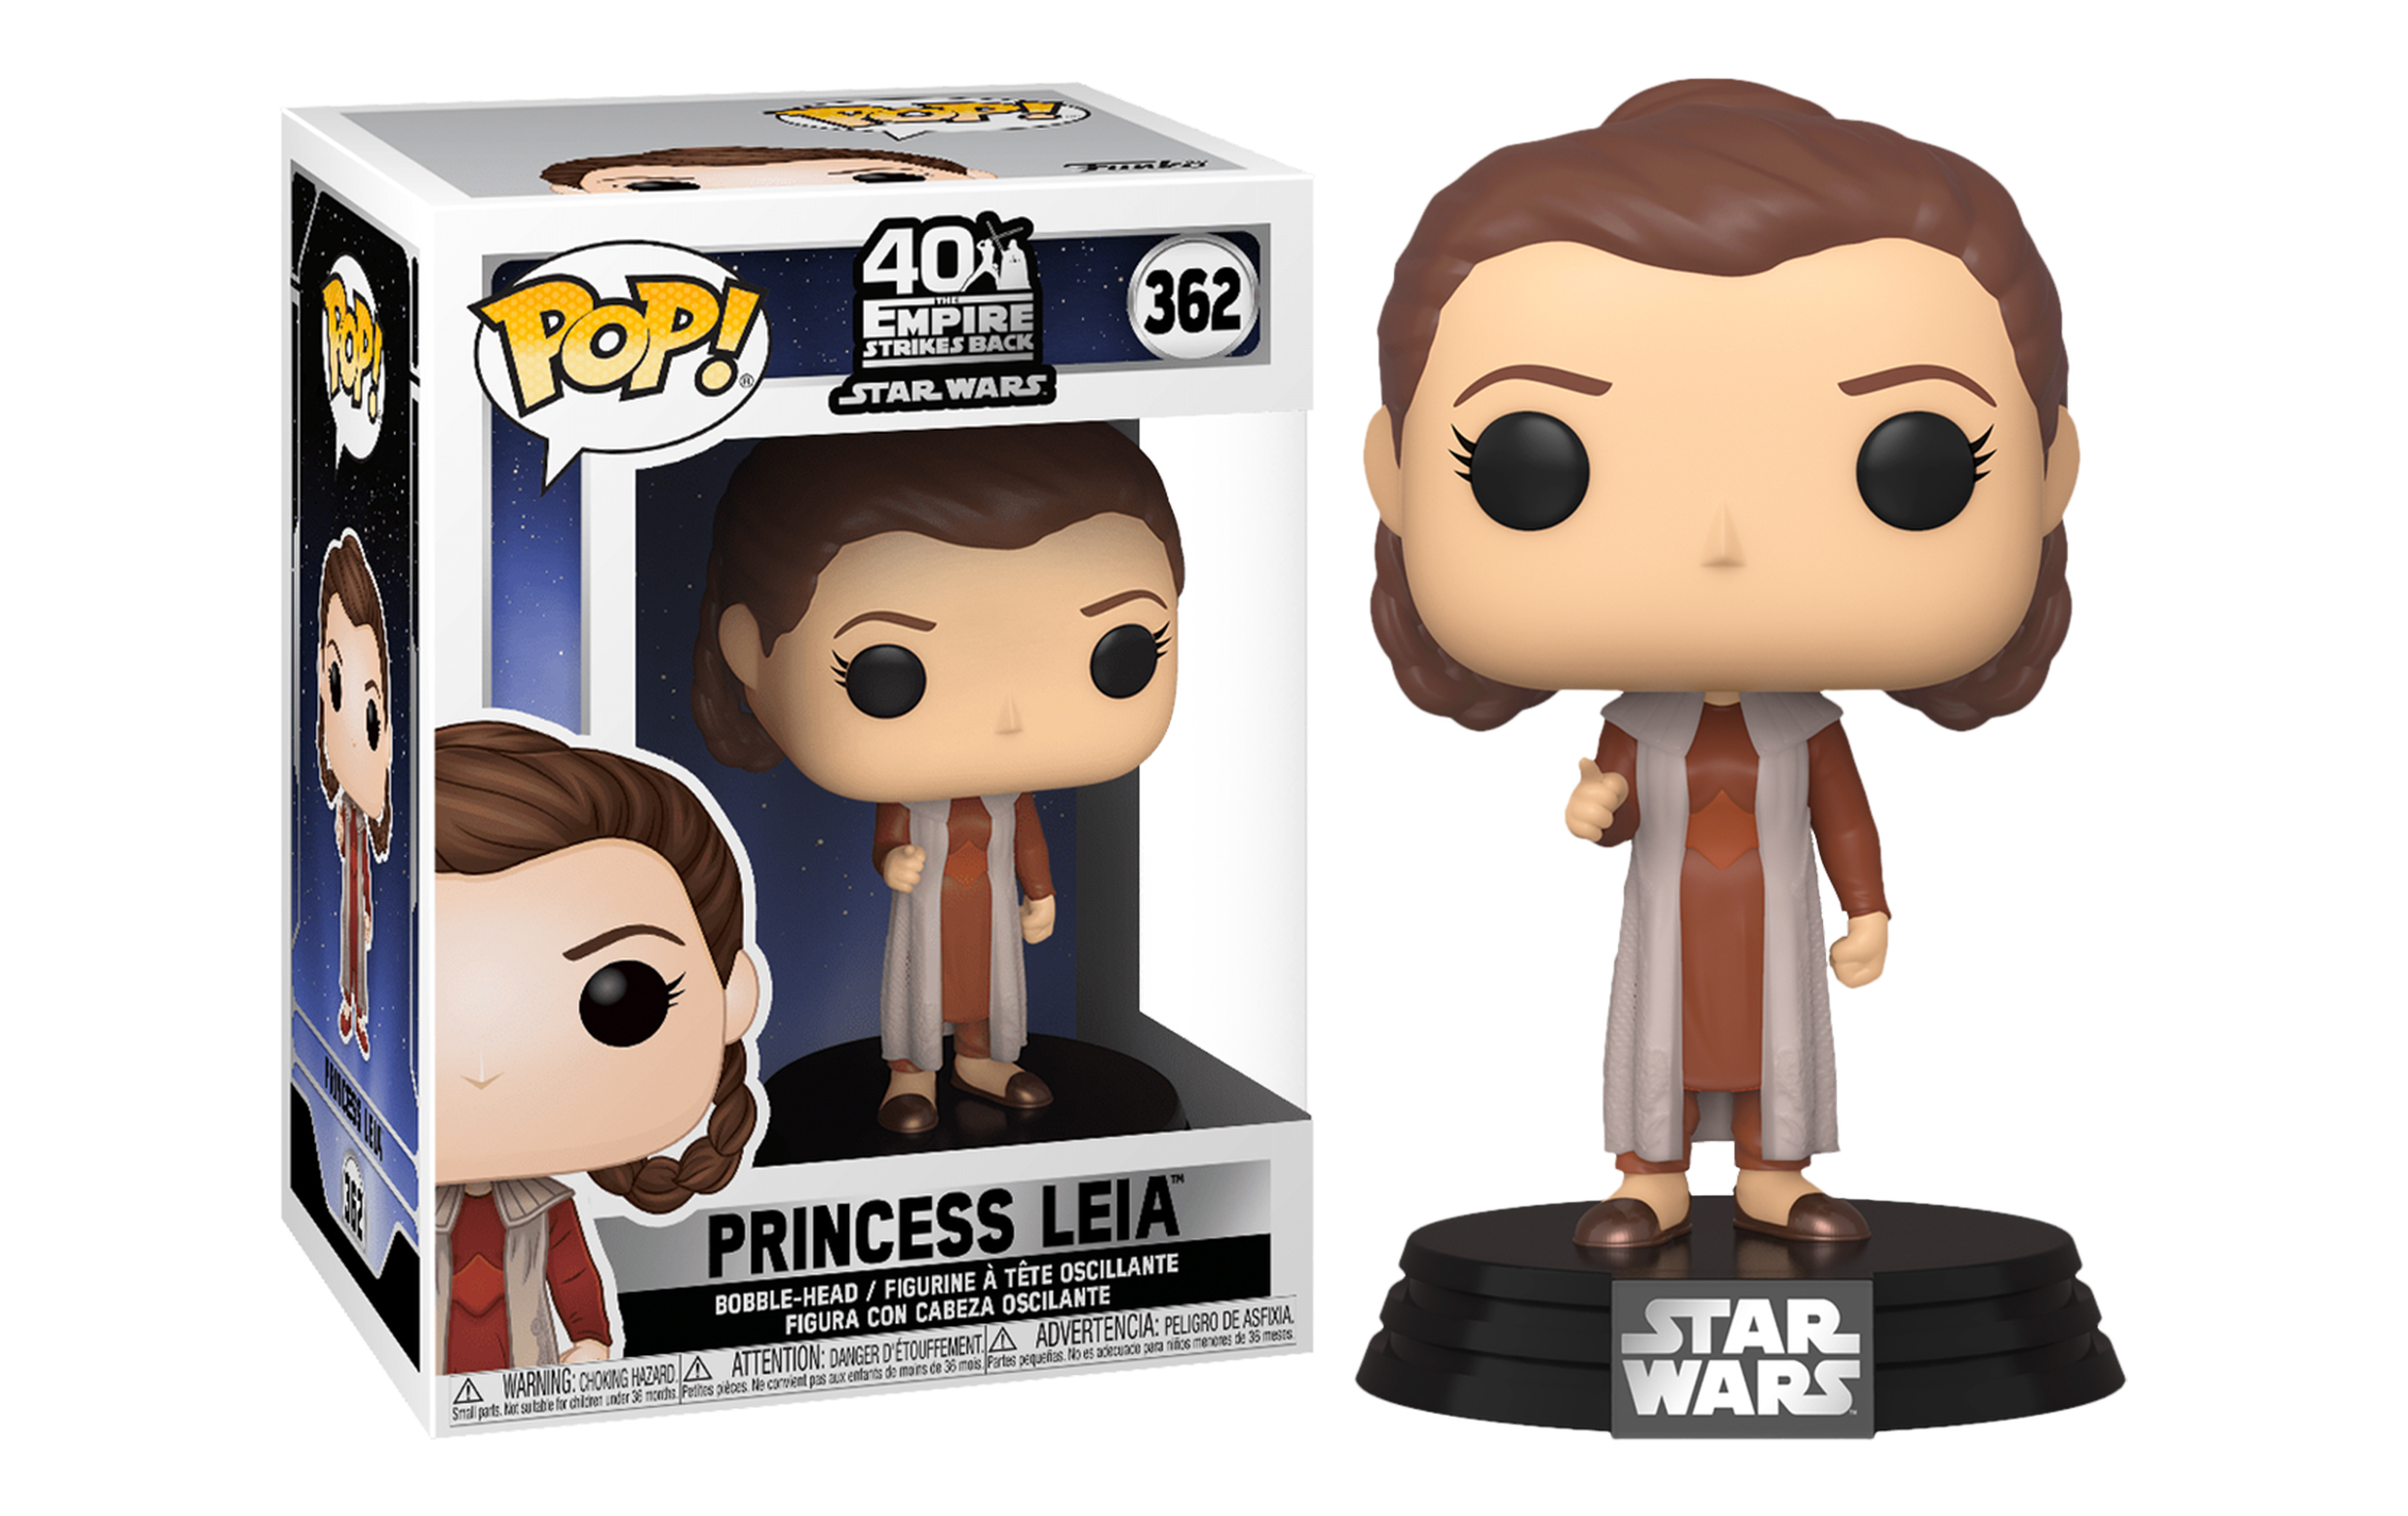 Star Wars Princess Leia 362 Funko POP Vinyl Figure